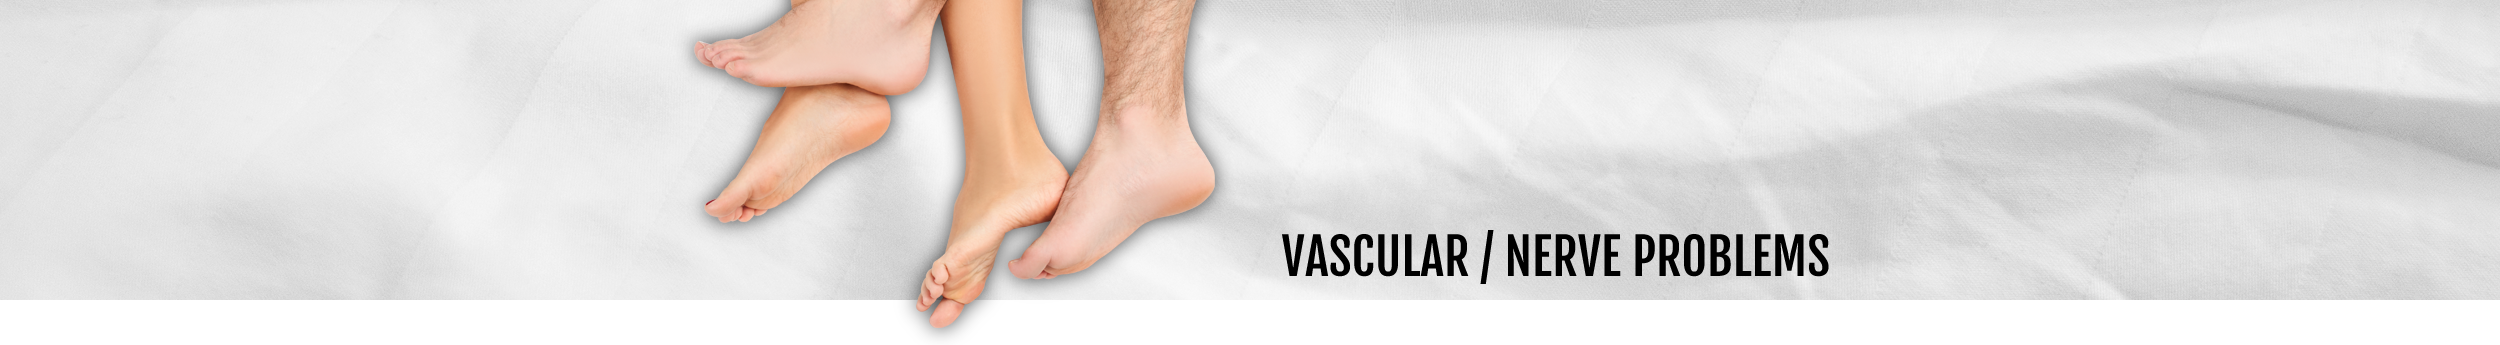 Vascular / Nerve problems header at the Walk IN Foot Clinic in central London